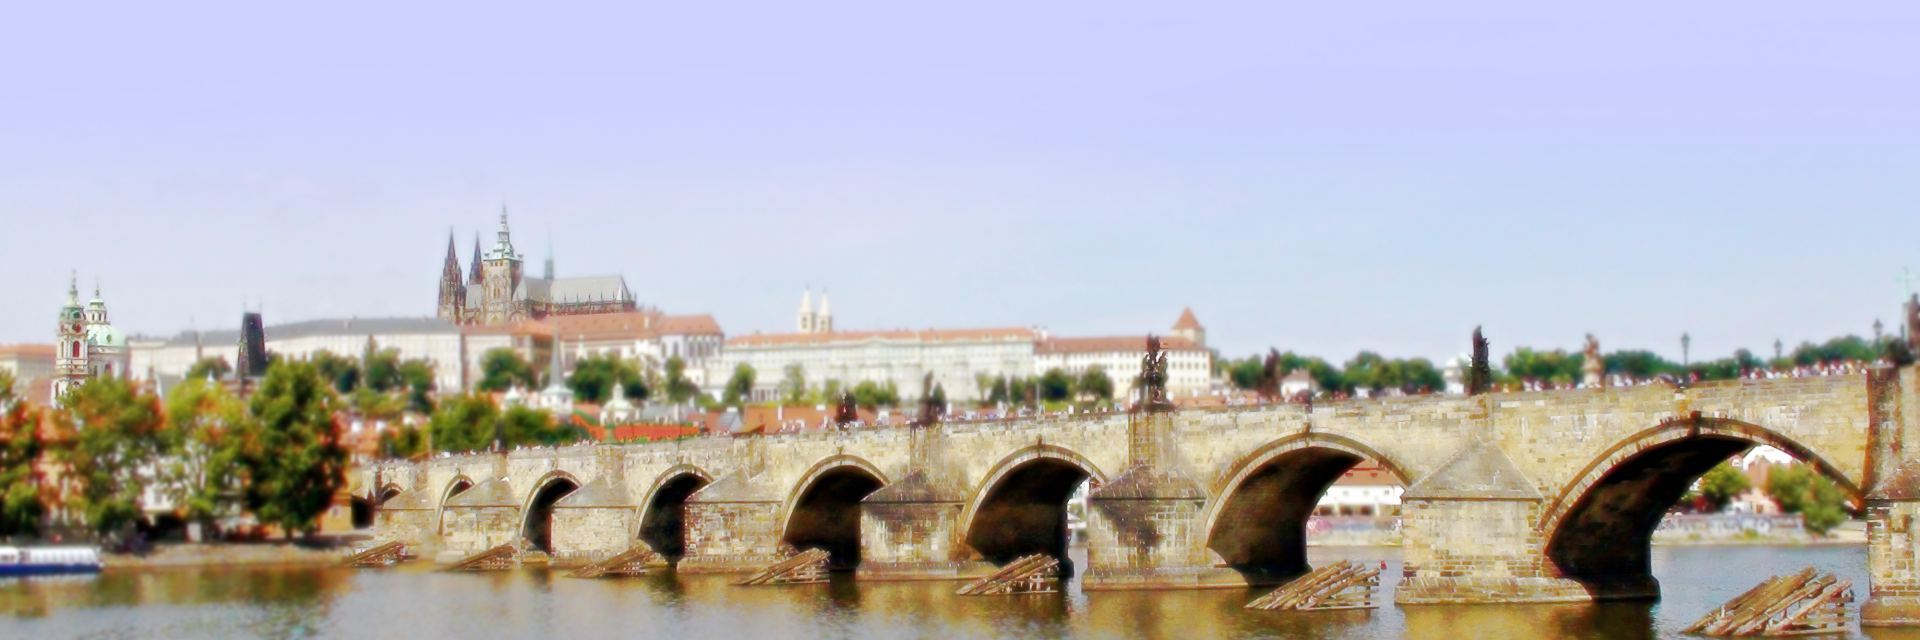 Charles bridge CZE